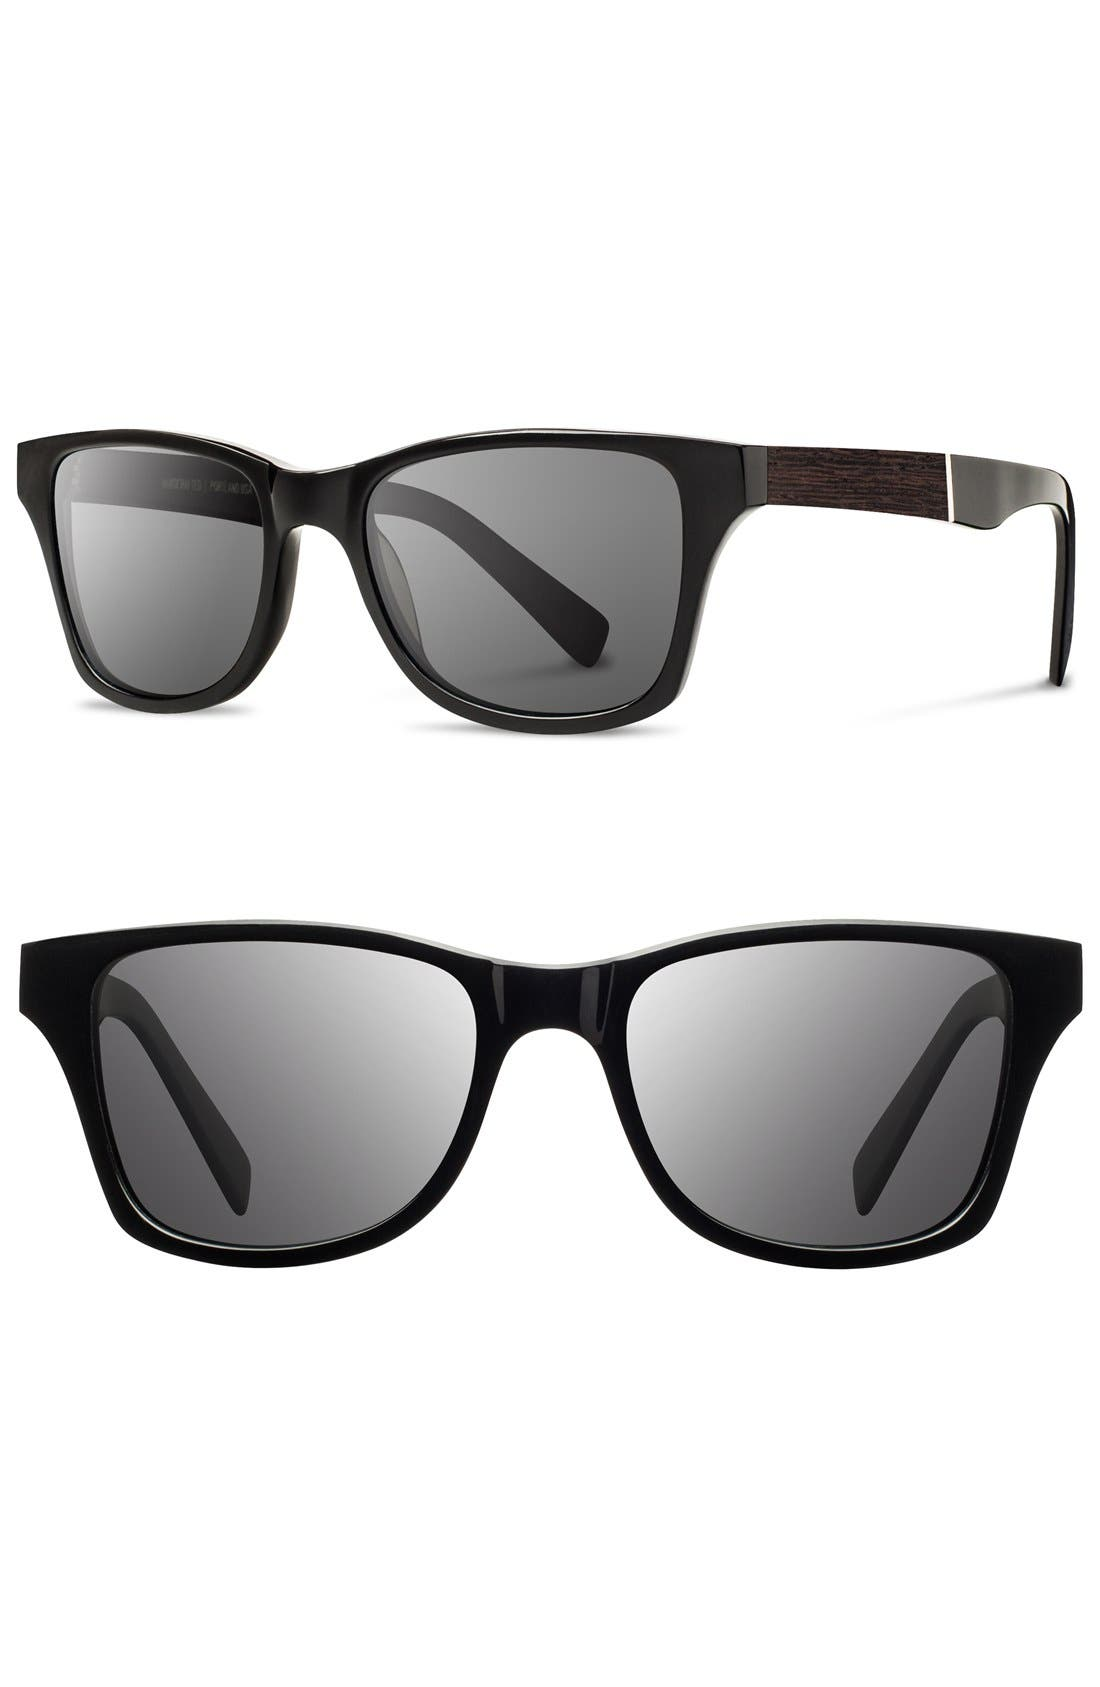 'Canby' 53mm Polarized Wood Sunglasses,                             Main thumbnail 1, color,                             001